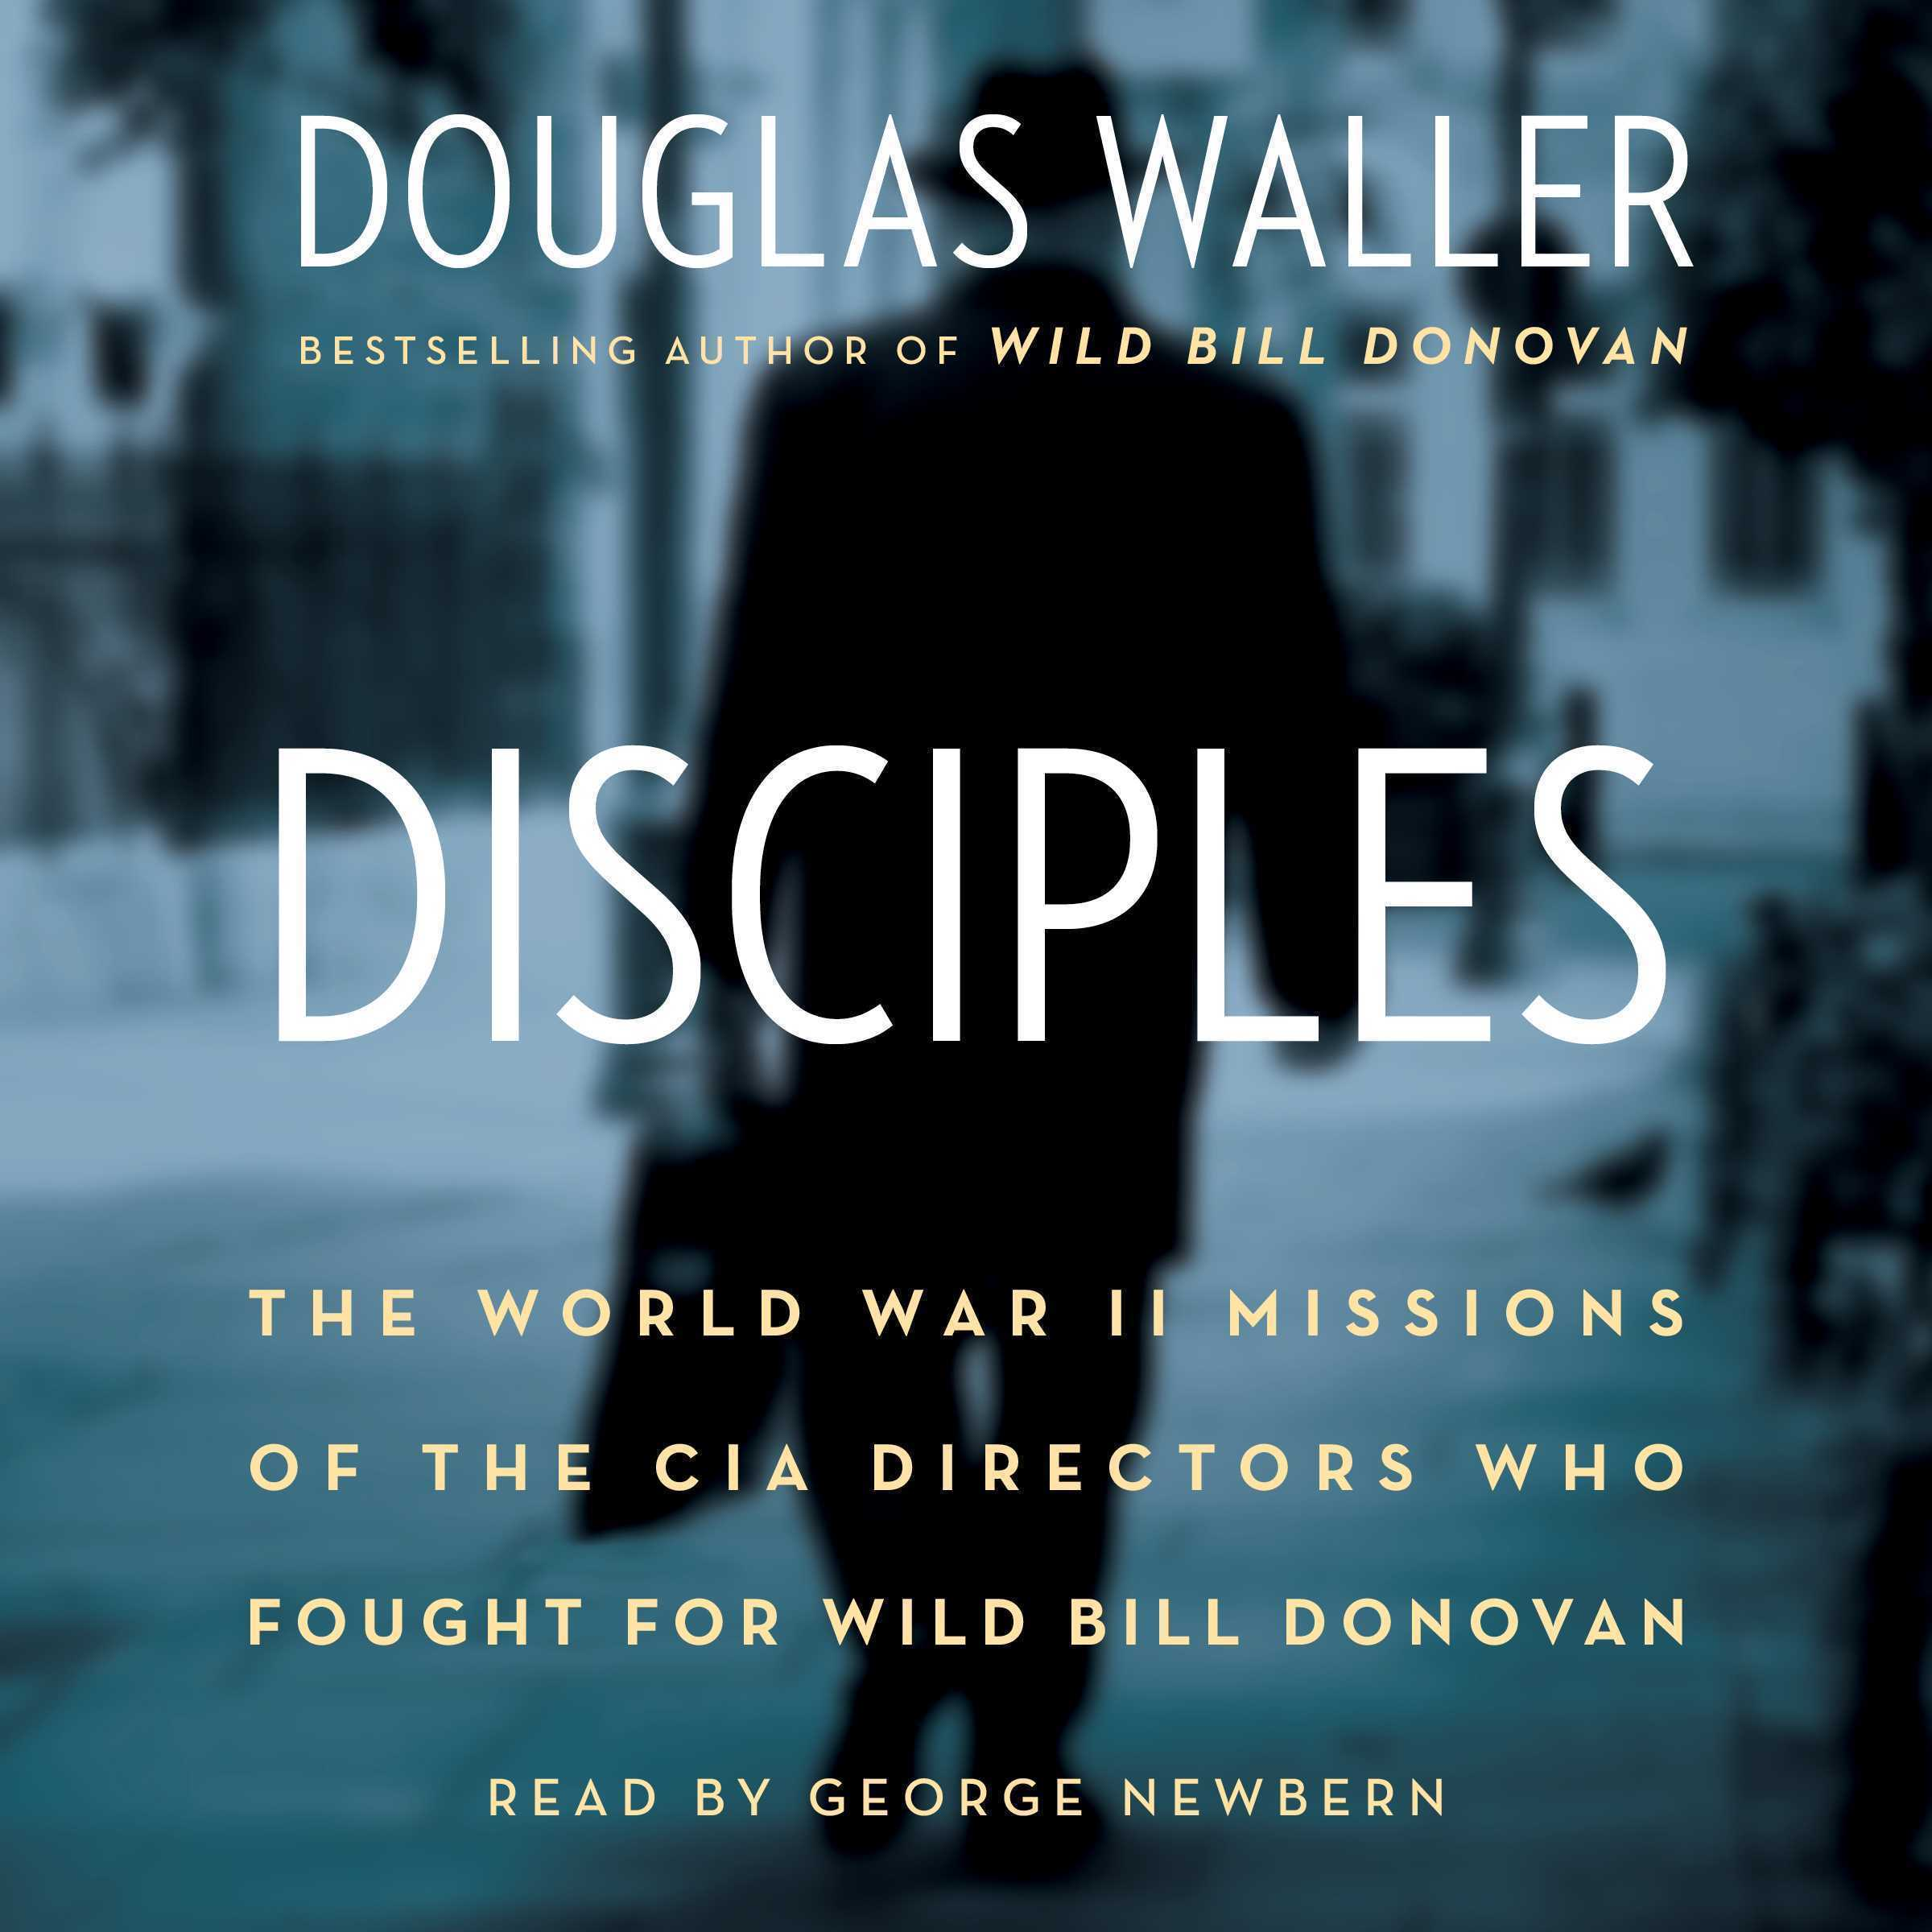 Printable Disciples: The World War II Missions of the CIA Directors Who Fought for Wild Bill Donovan Audiobook Cover Art